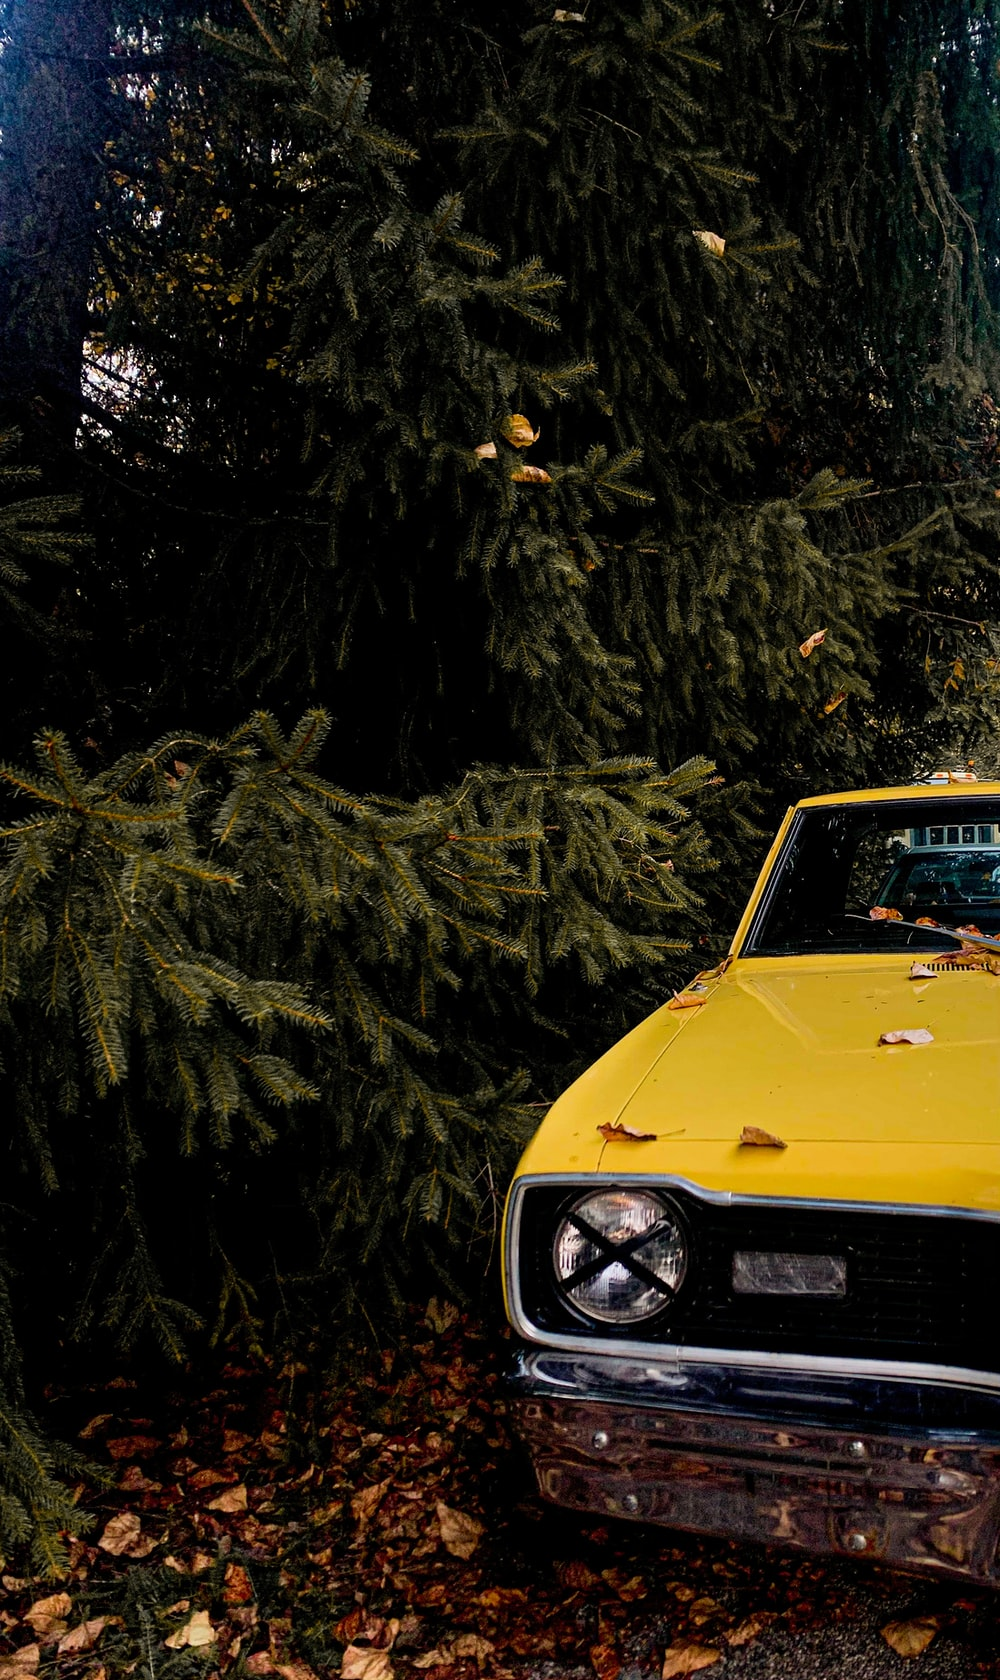 yellow car parked near green trees during daytime